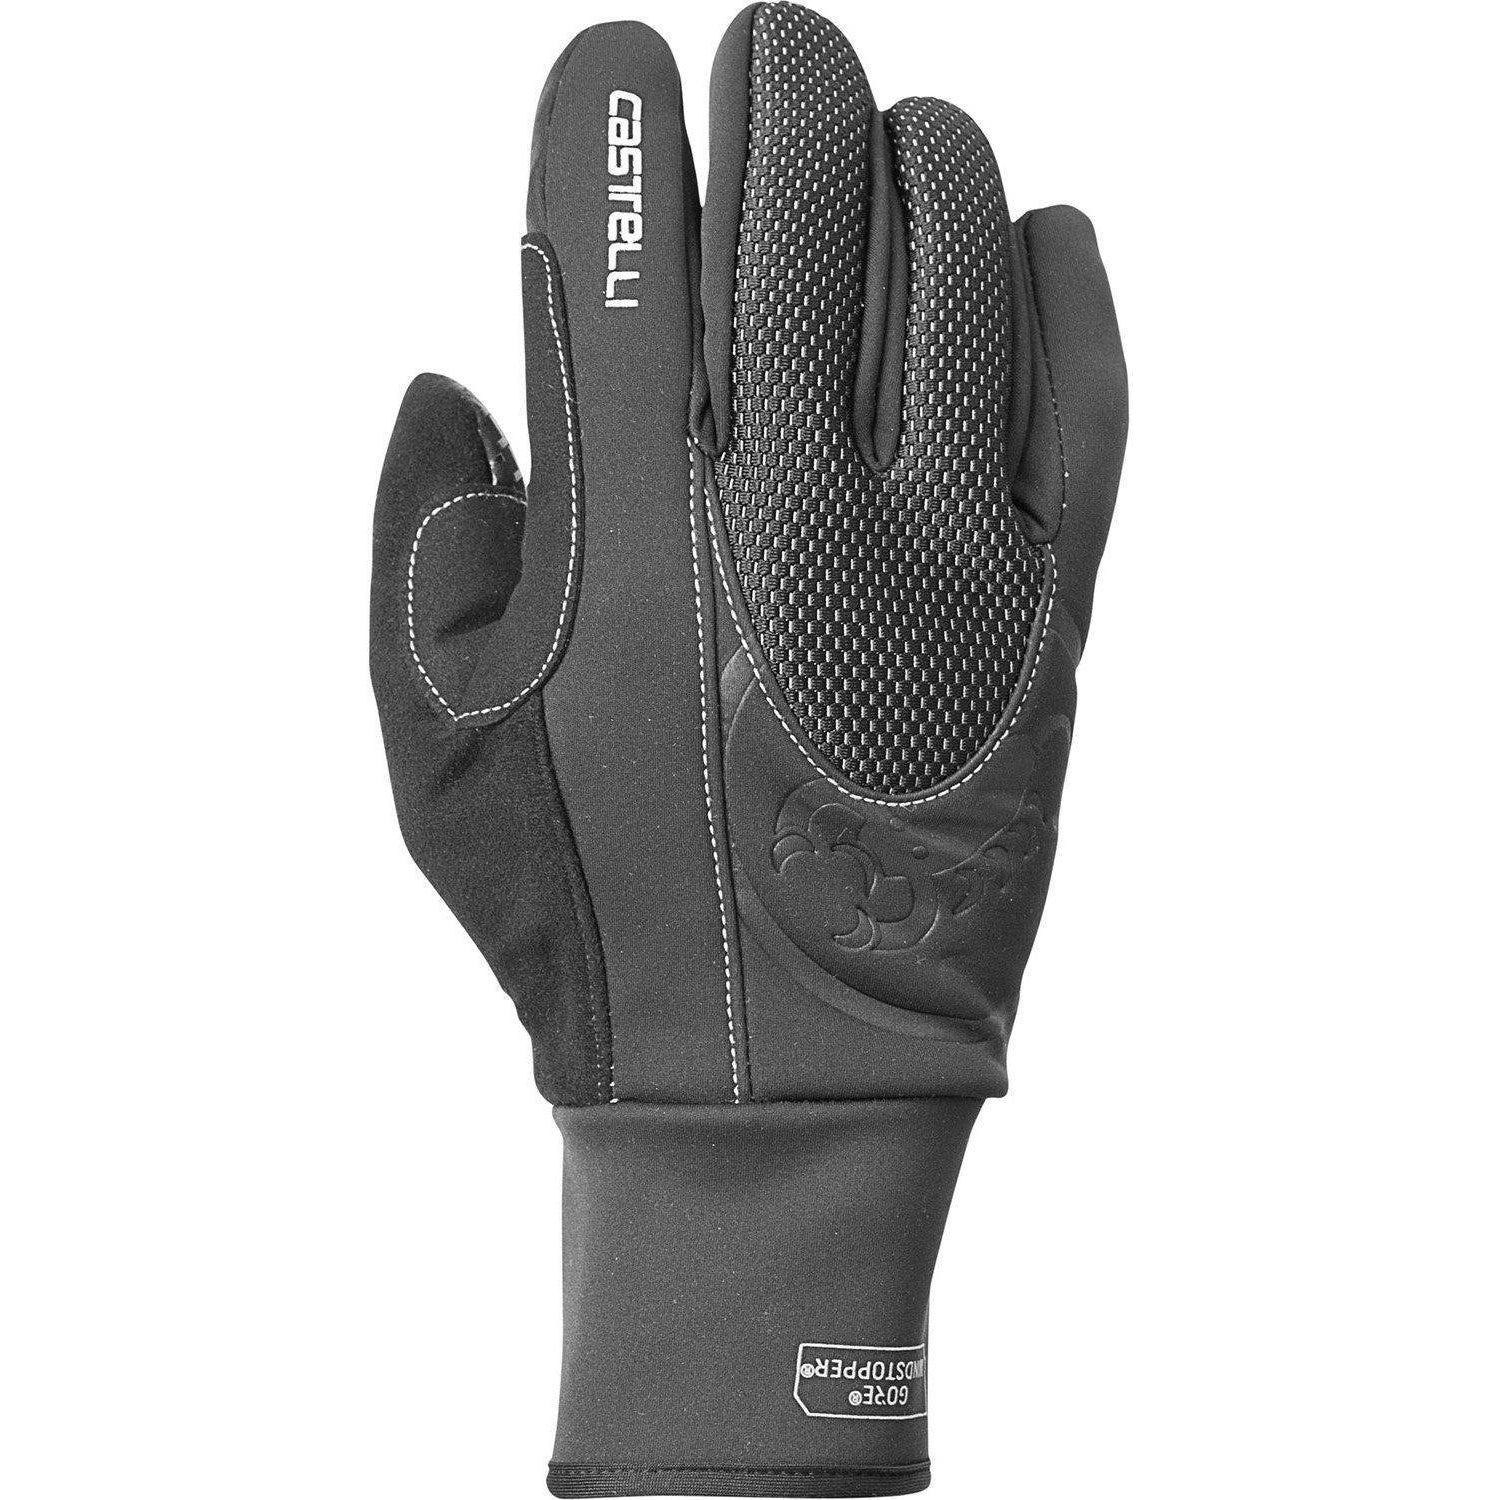 Castelli-Castelli Estremo Winter Gloves-Black-XS-CS125390101-saddleback-elite-performance-cycling